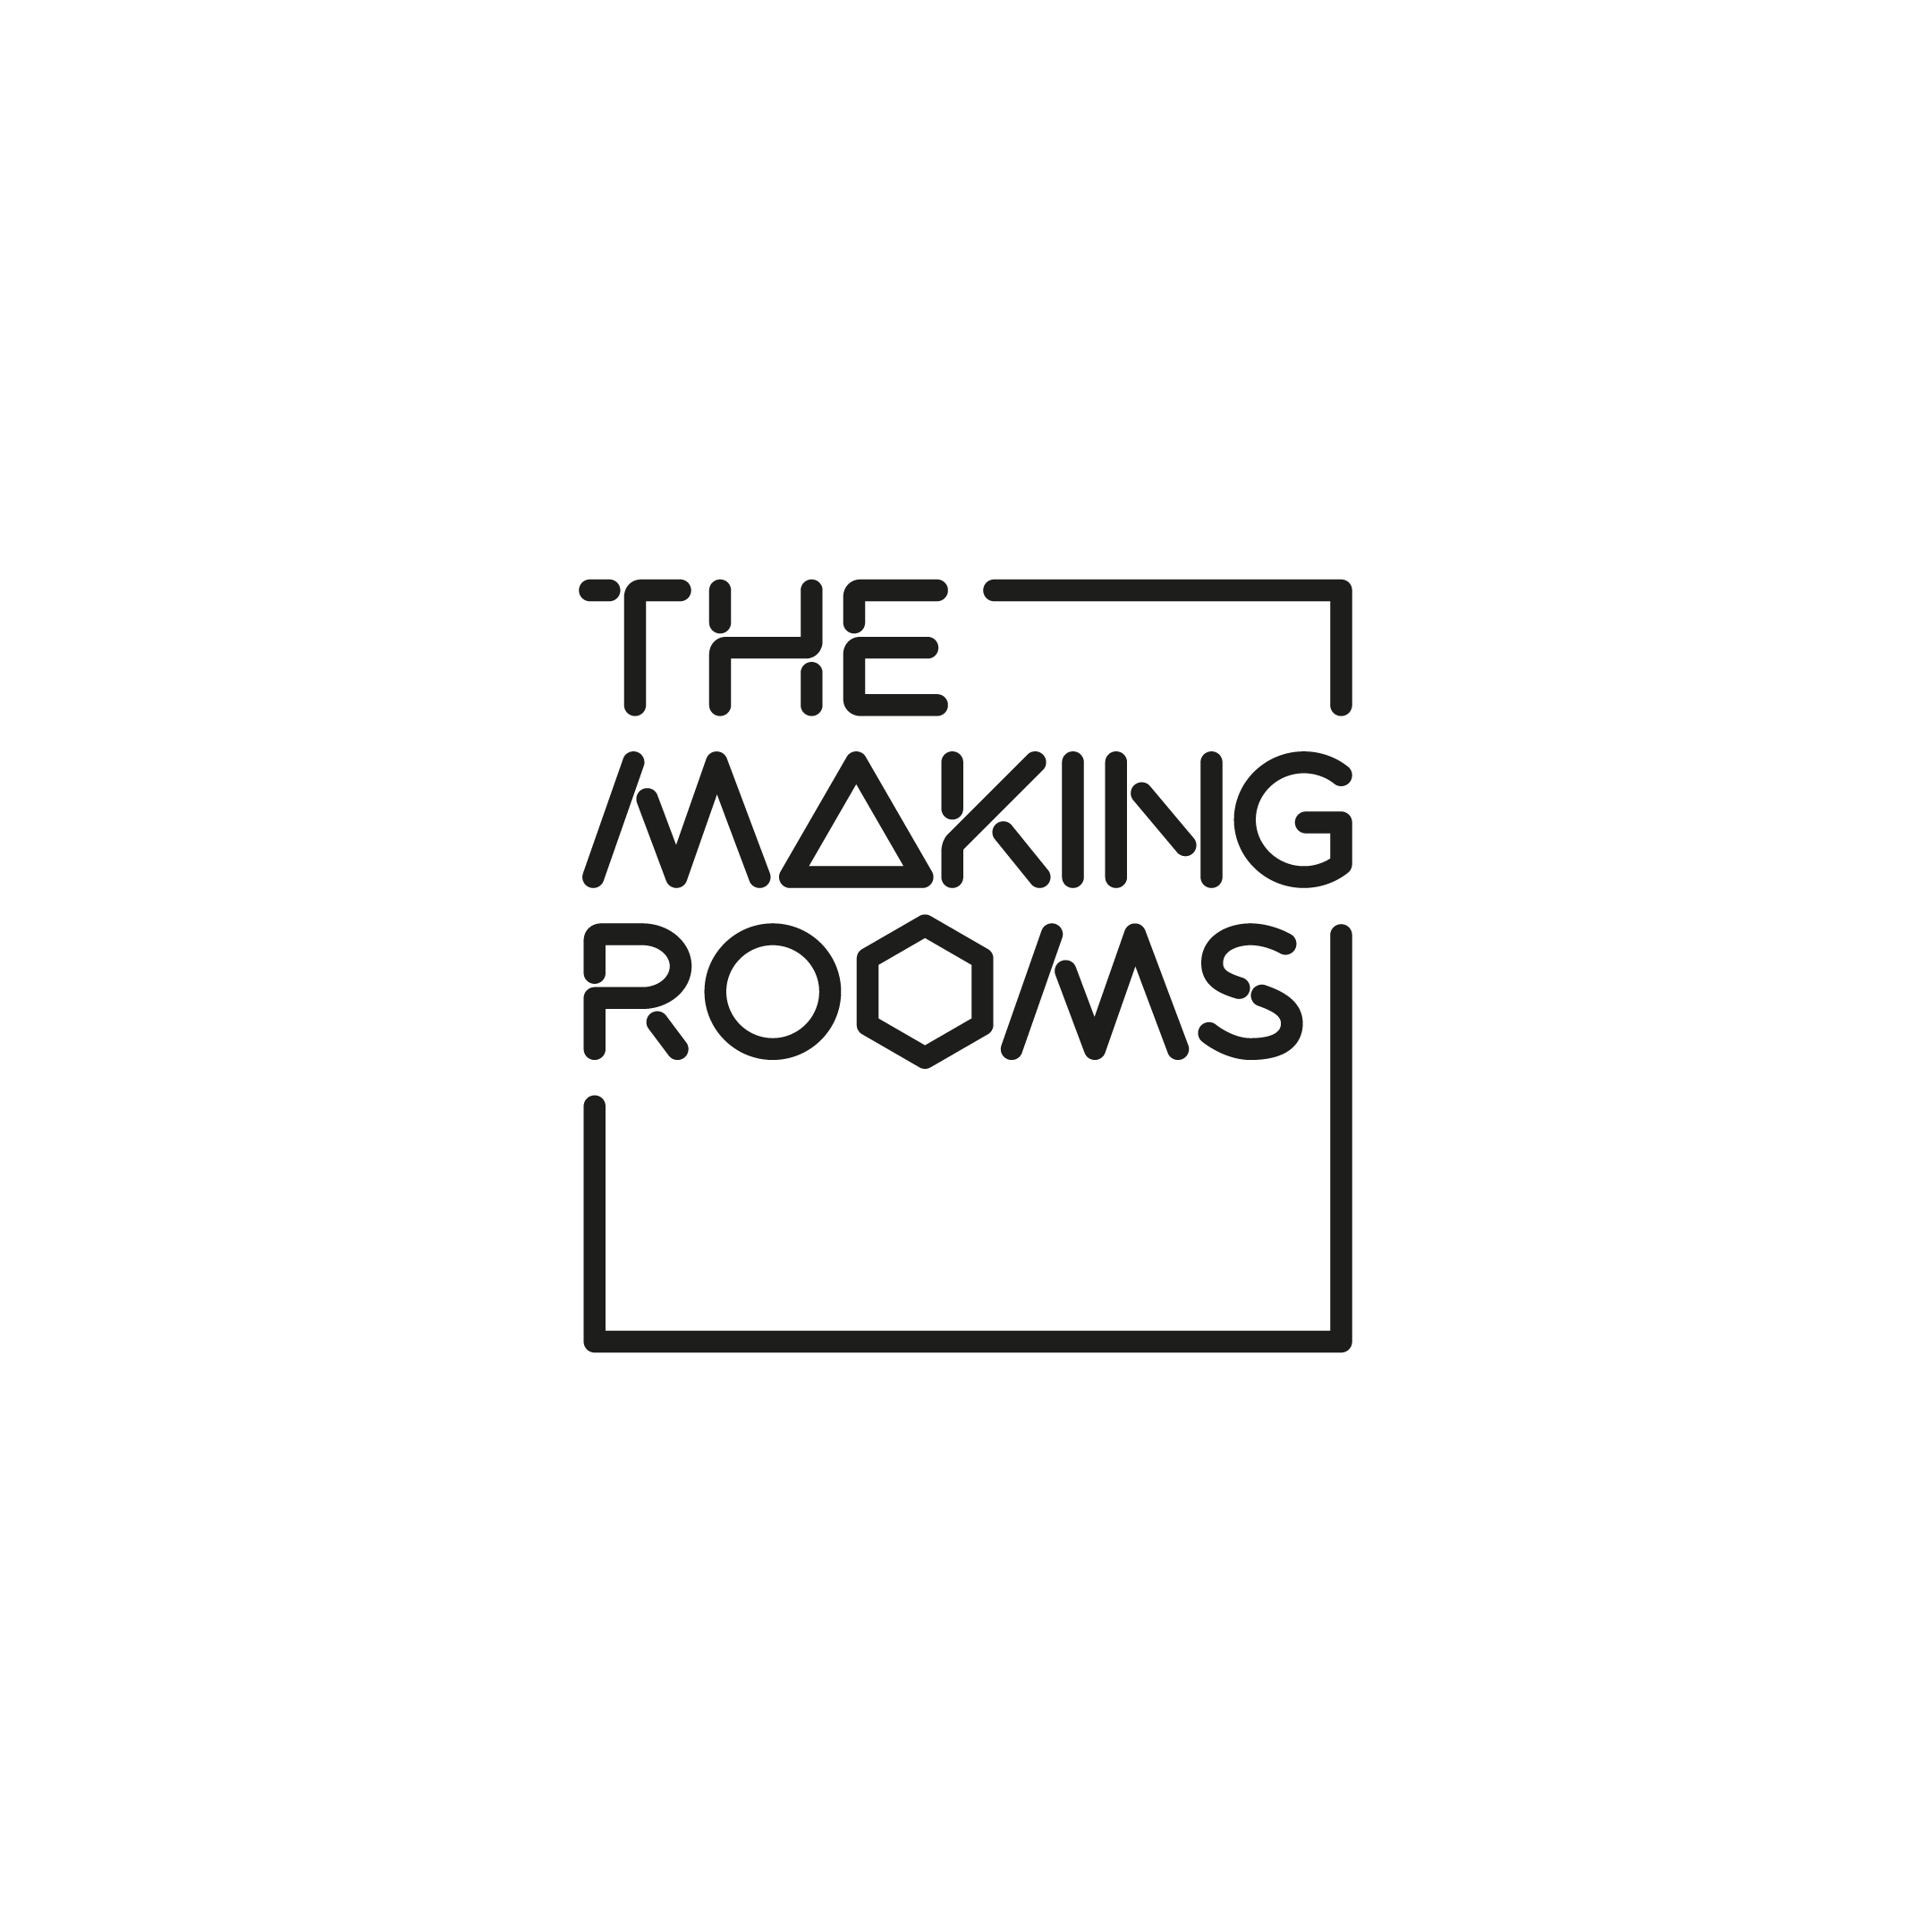 Logo_The-Making-Rooms